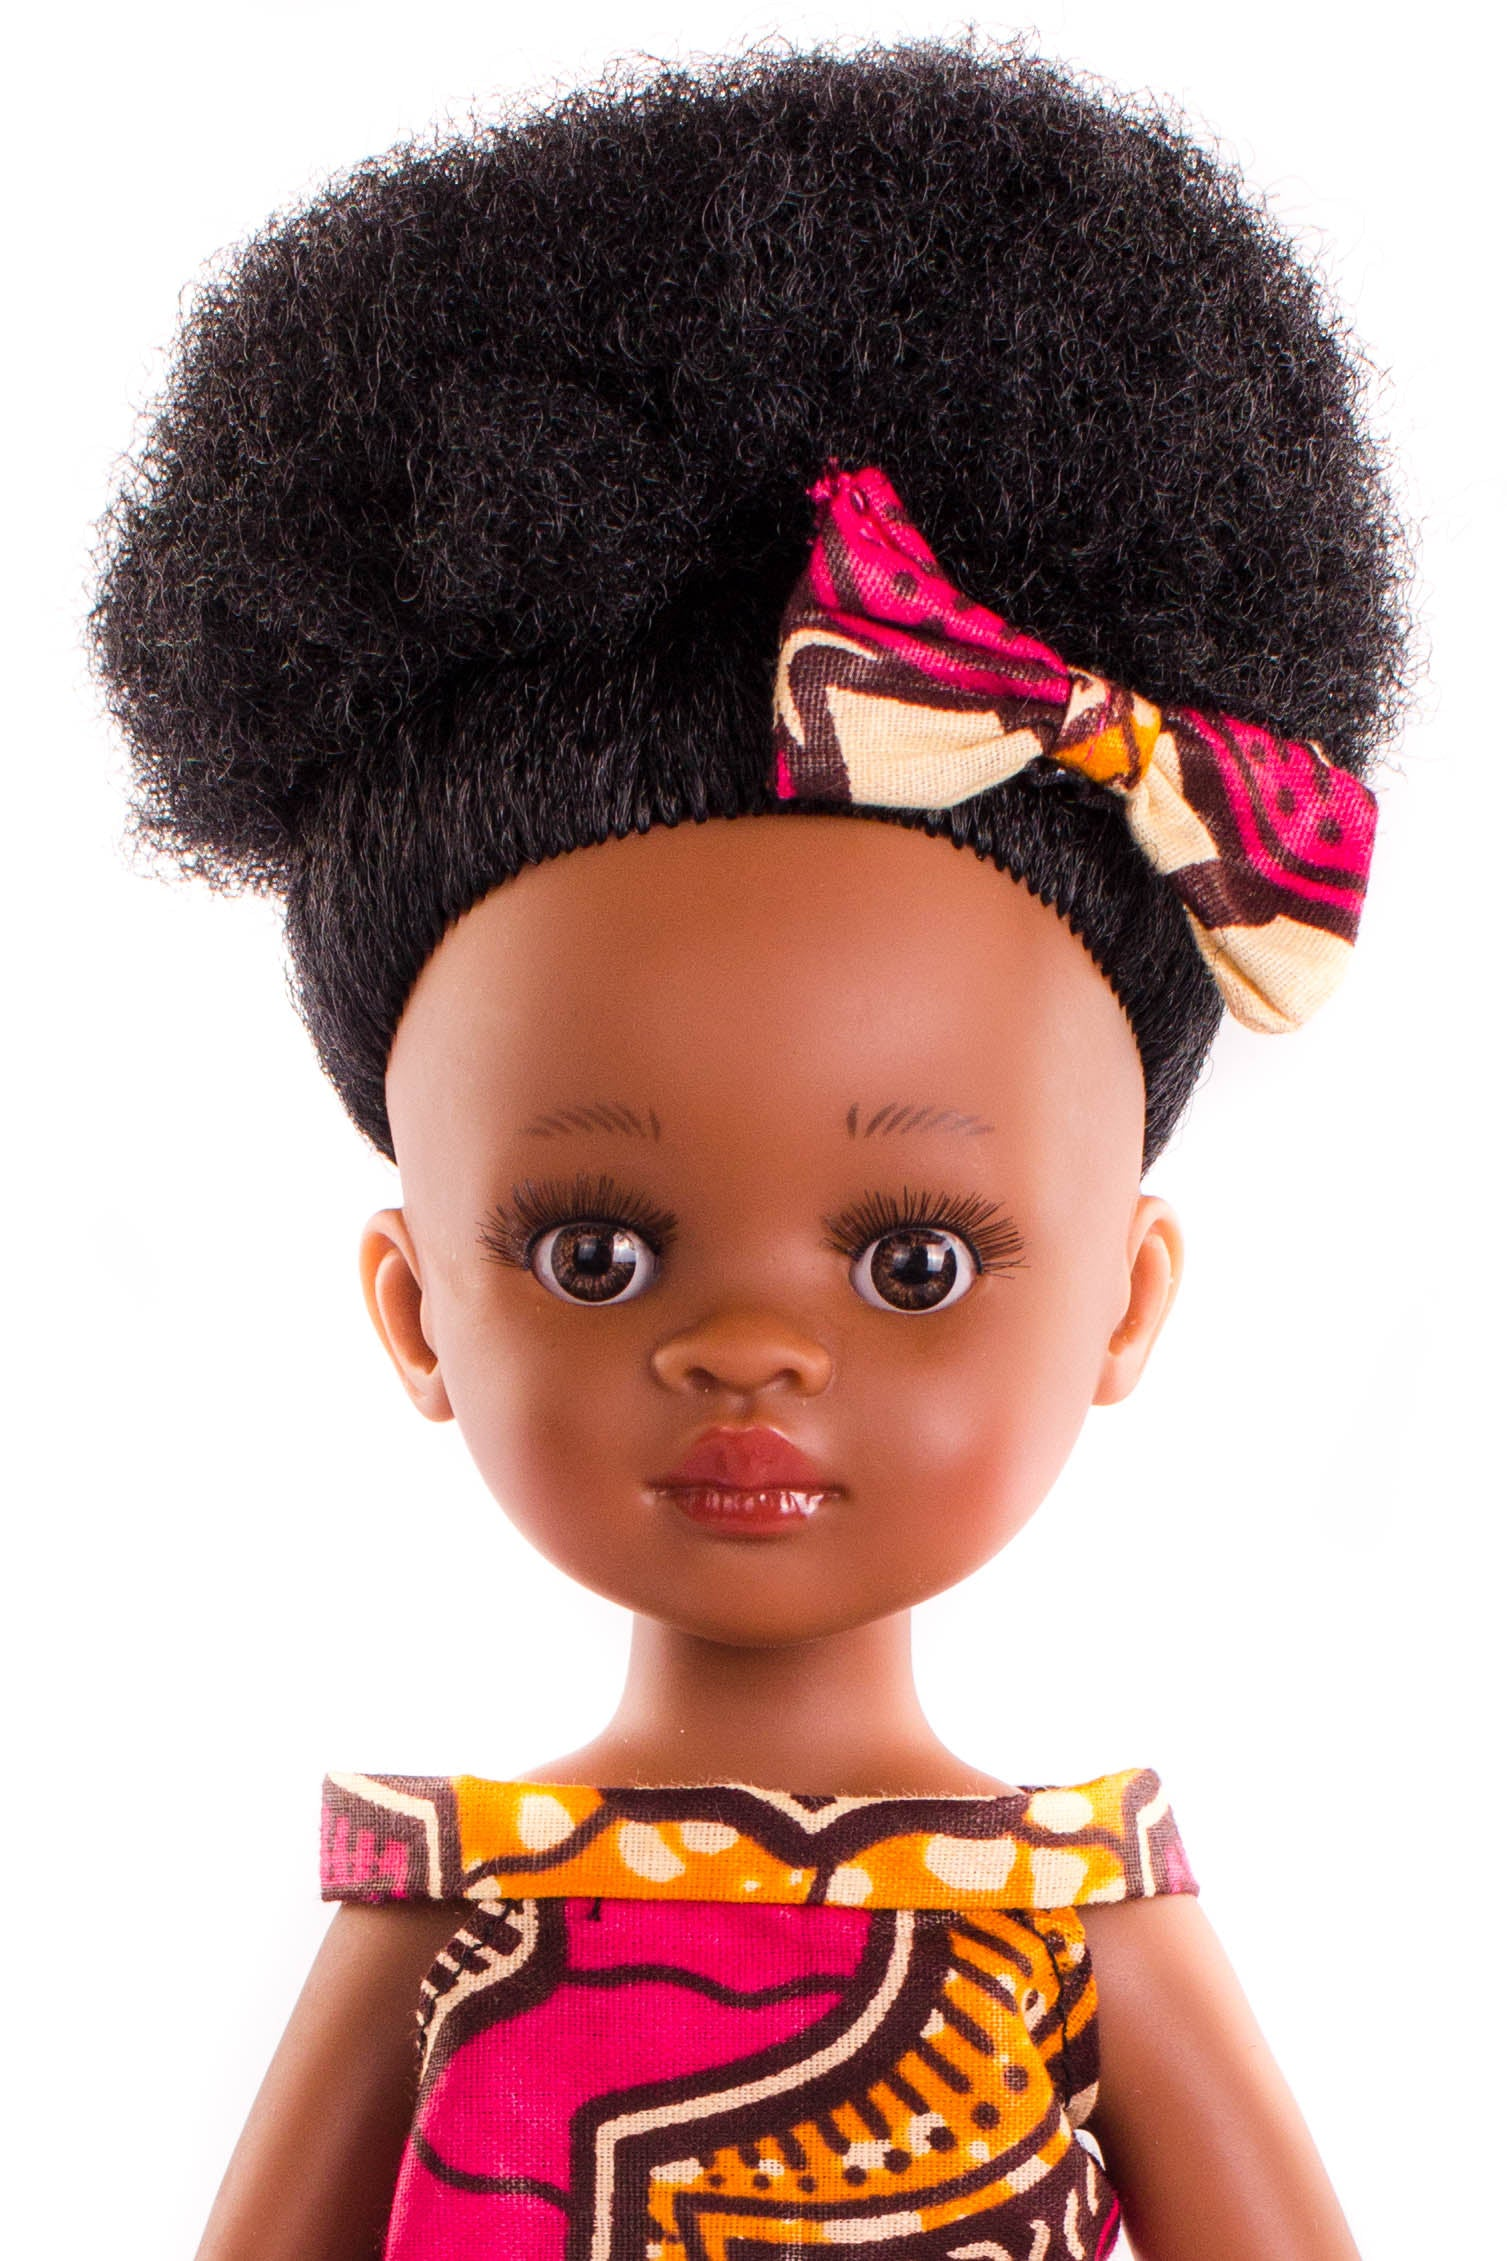 Bontle Princess Doll (28cms) - Dressed in Pink - Bounce Essential Hair